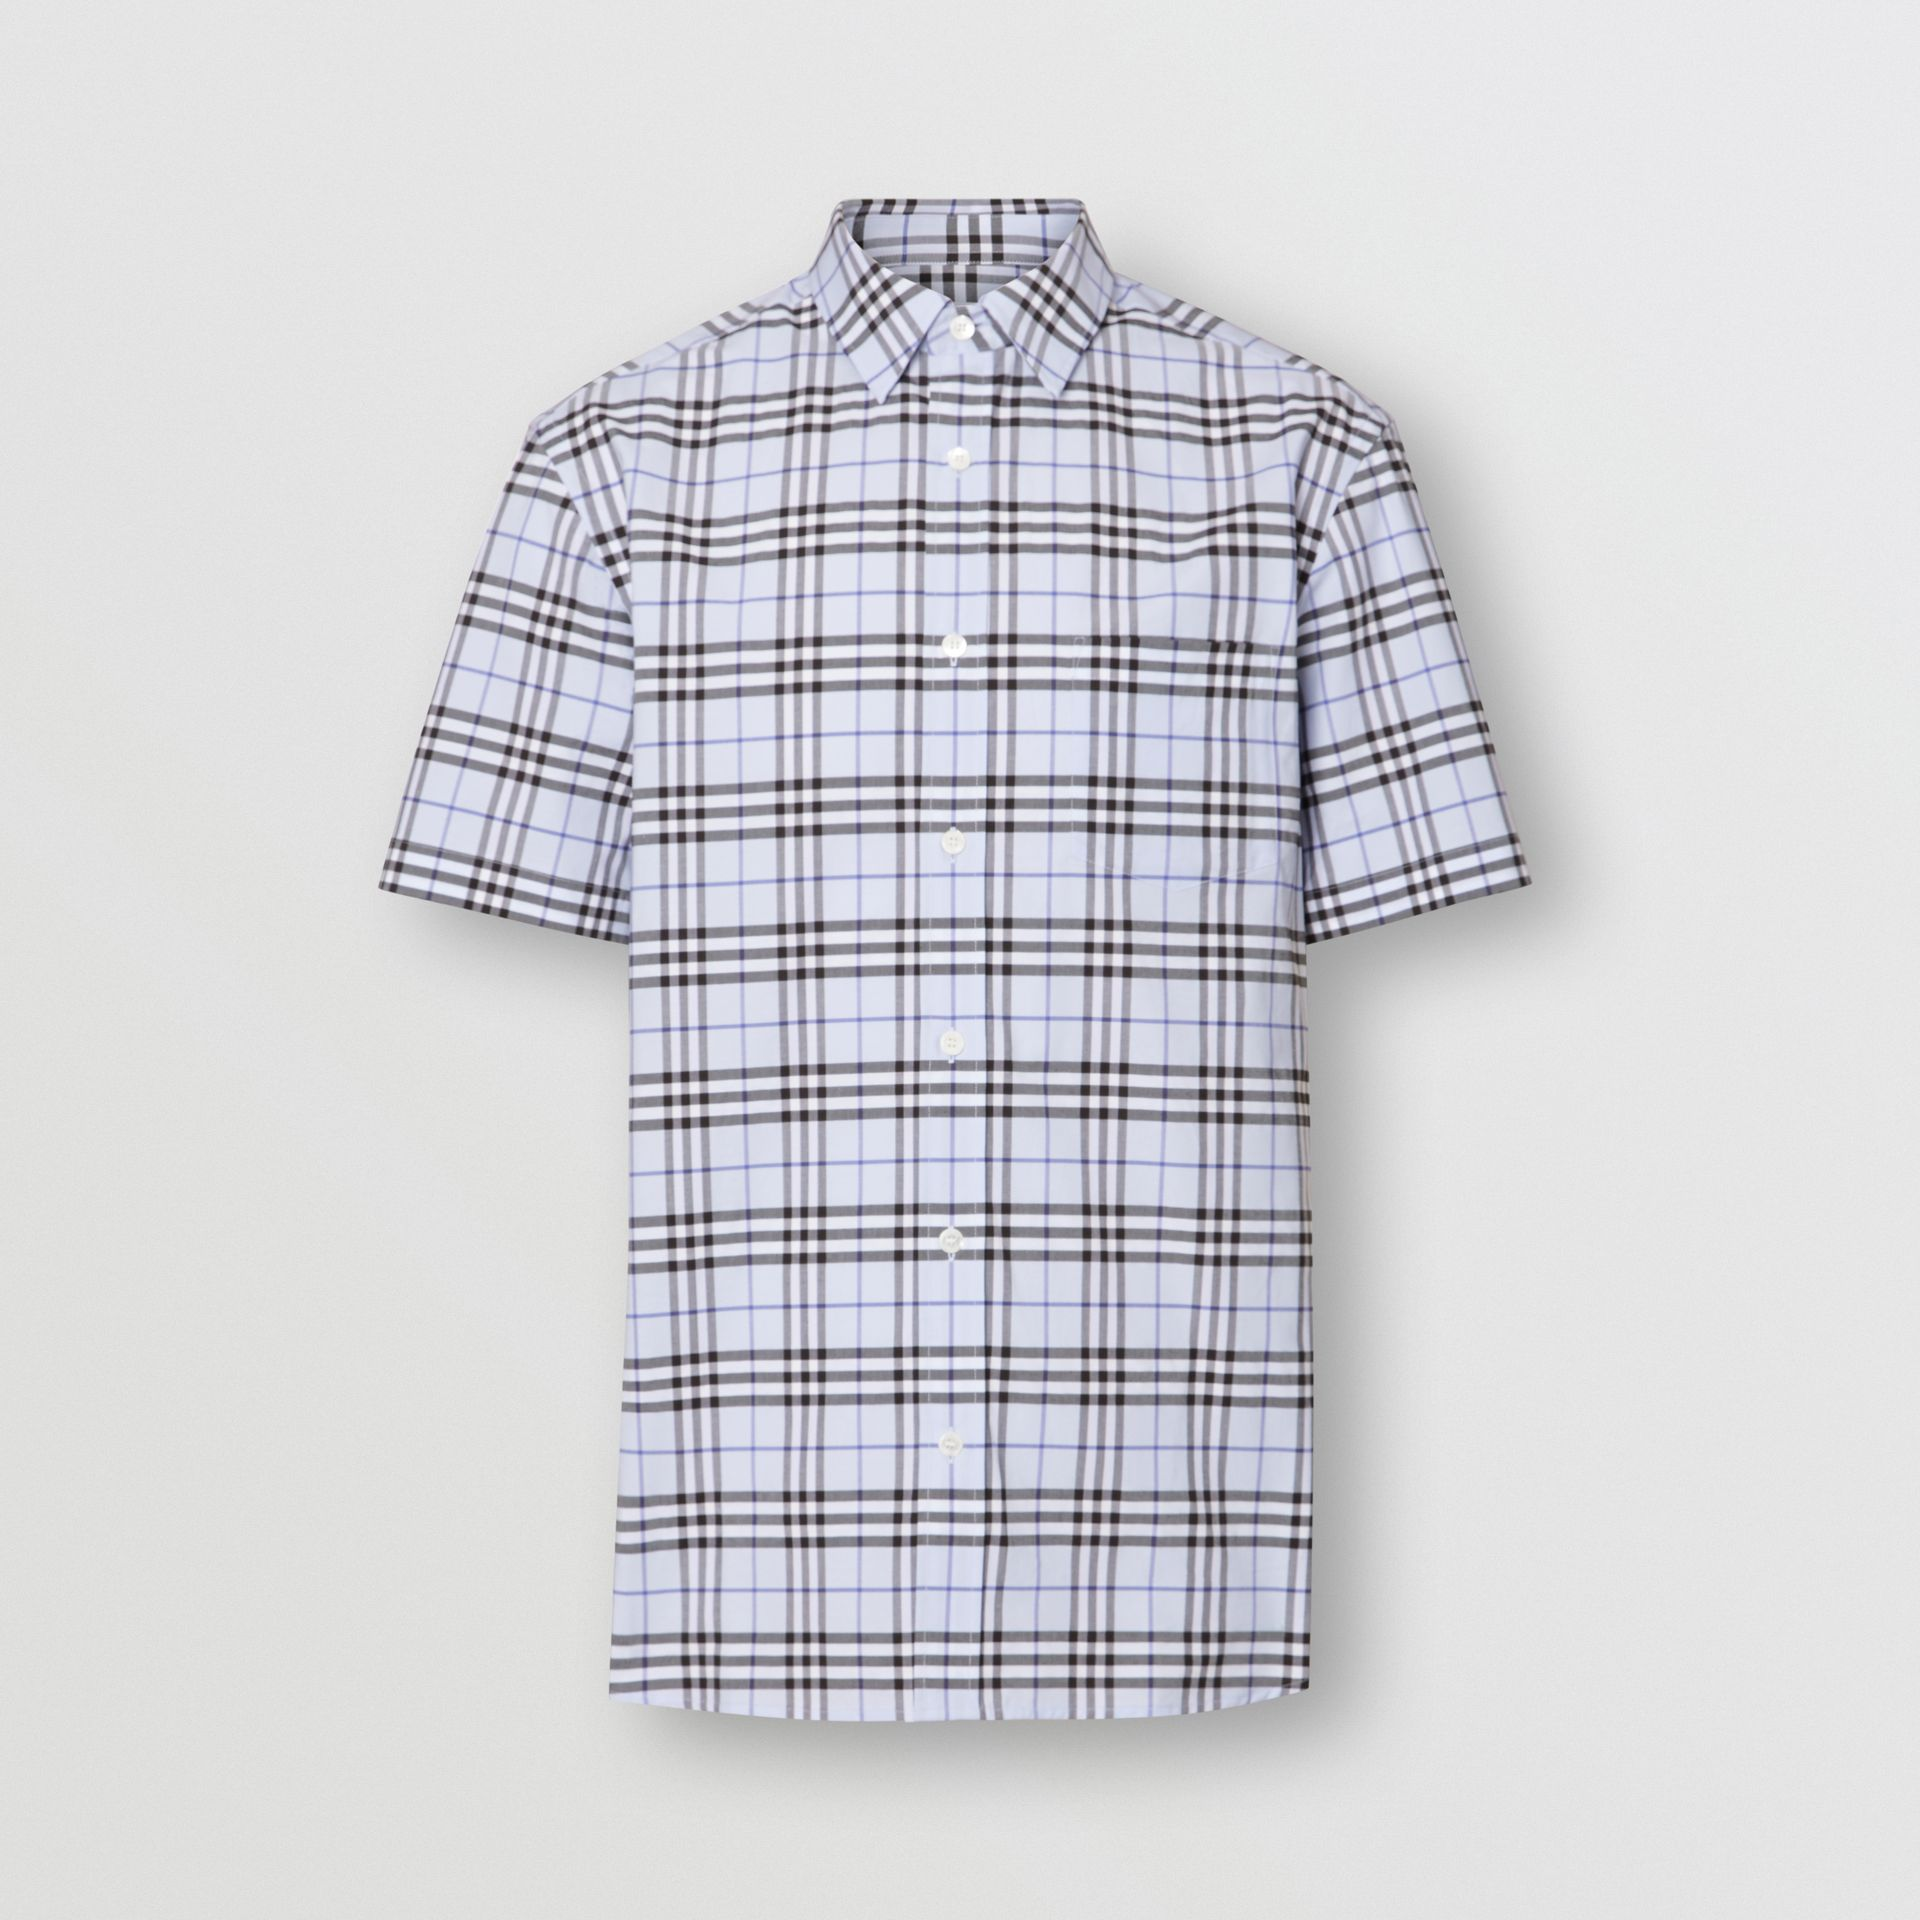 Short-sleeve Check Stretch Cotton Shirt in Sky Blue - Men | Burberry - gallery image 3